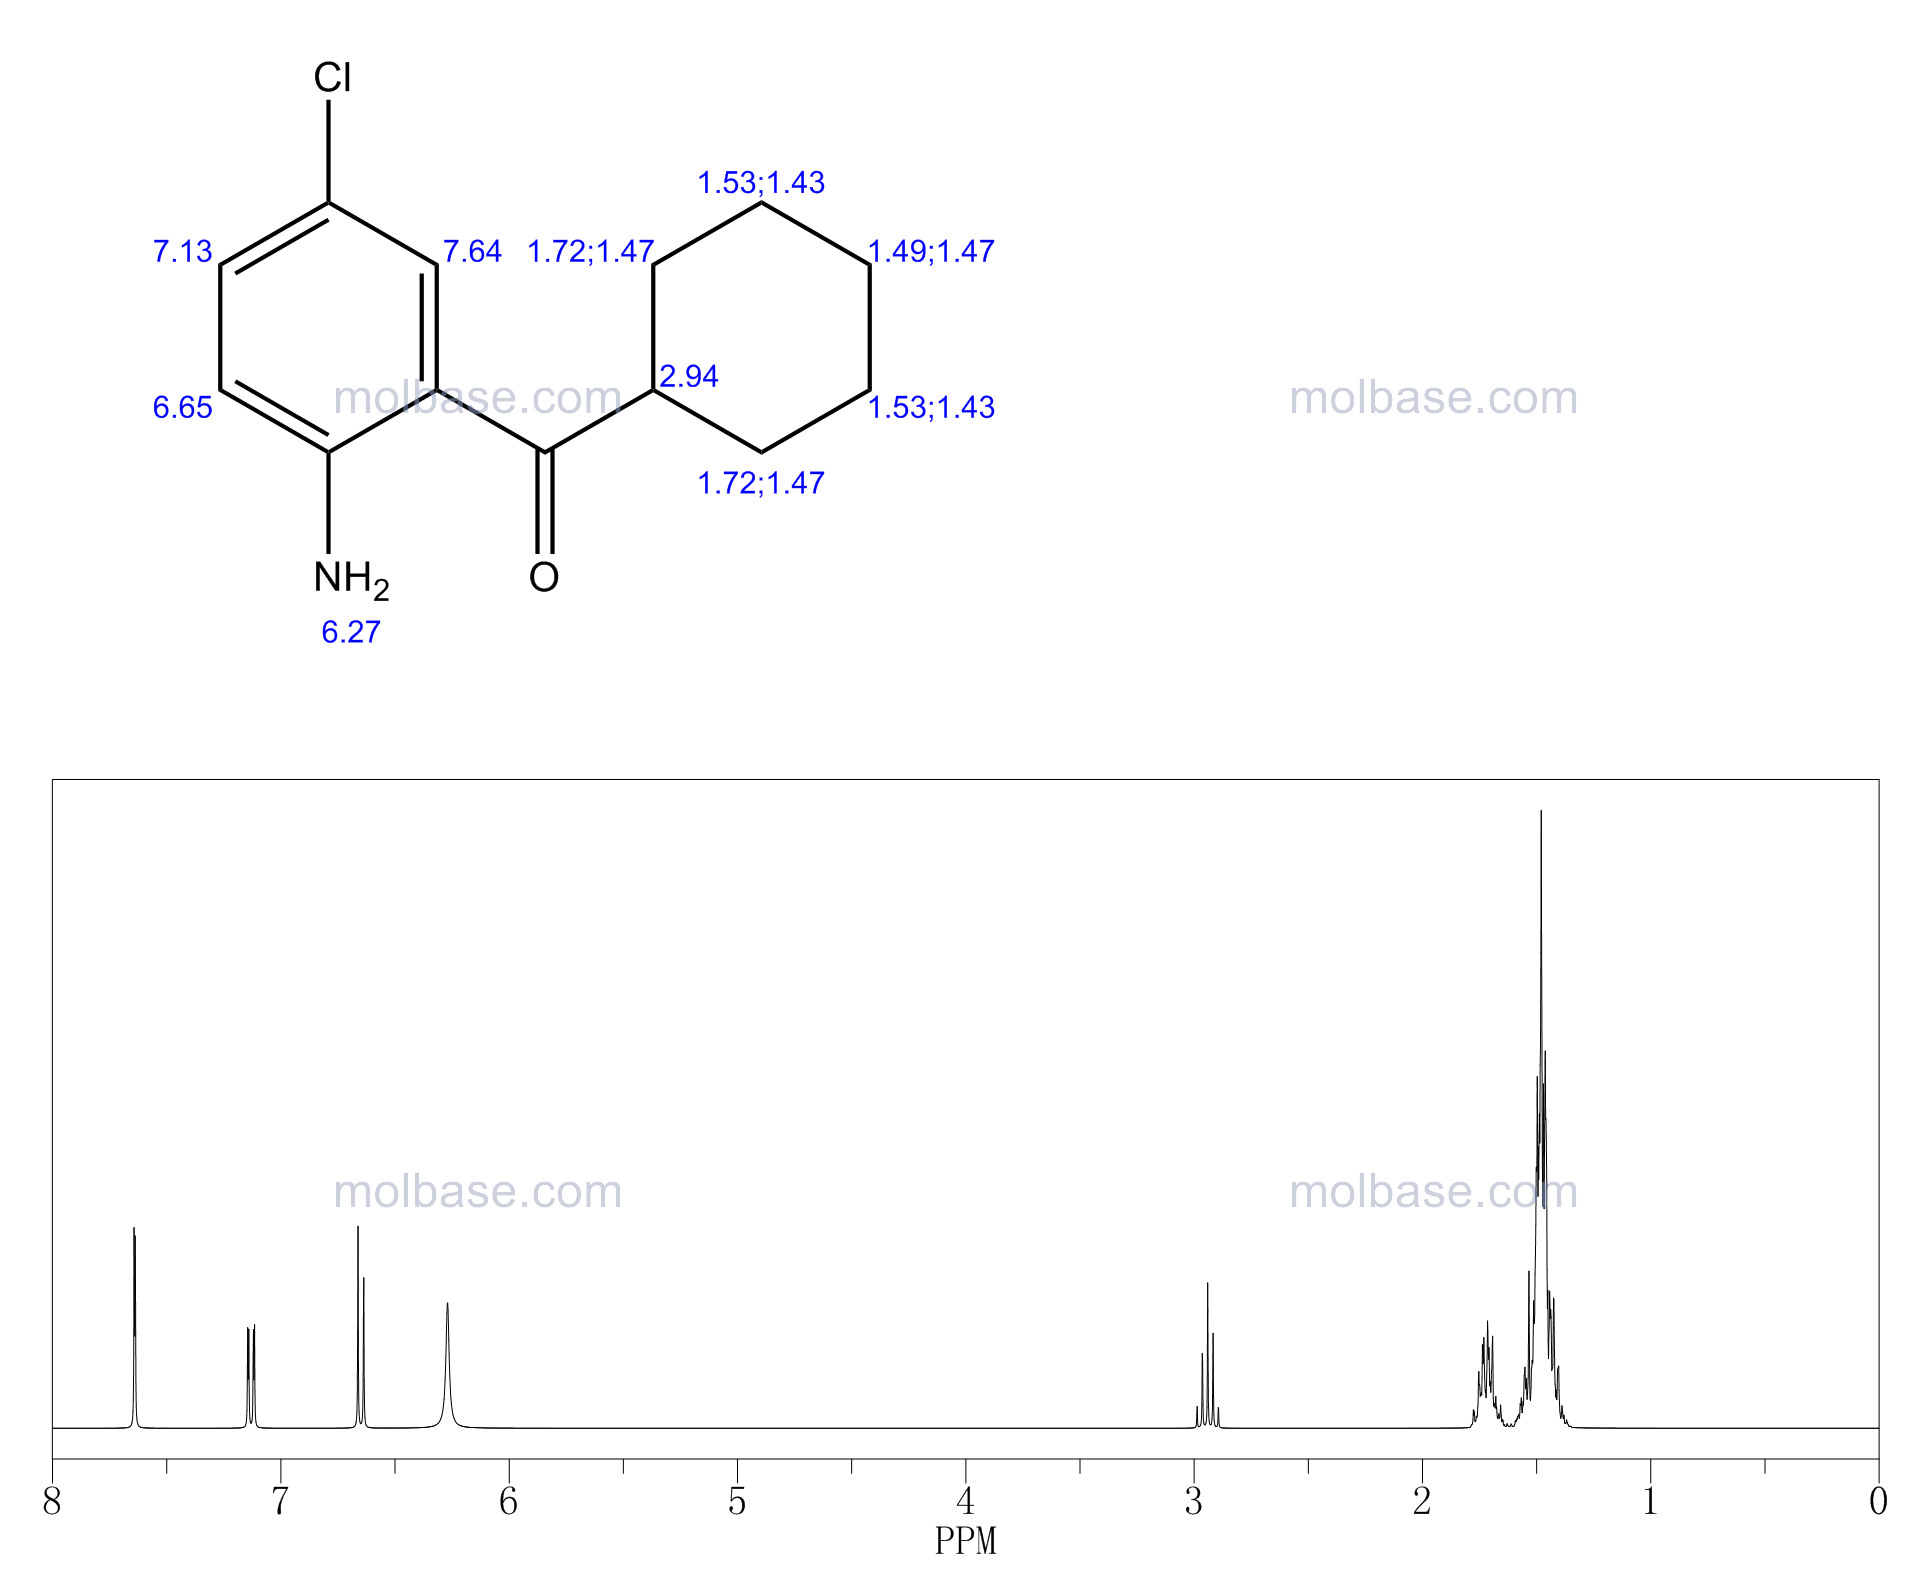 (2-Amino-5-chlorophenyl)-cyclohexylmethanone NMR spectra analysis, Chemical CAS NO. 1789-30-6 NMR spectral analysis, (2-Amino-5-chlorophenyl)-cyclohexylmethanone C-NMR spectrum